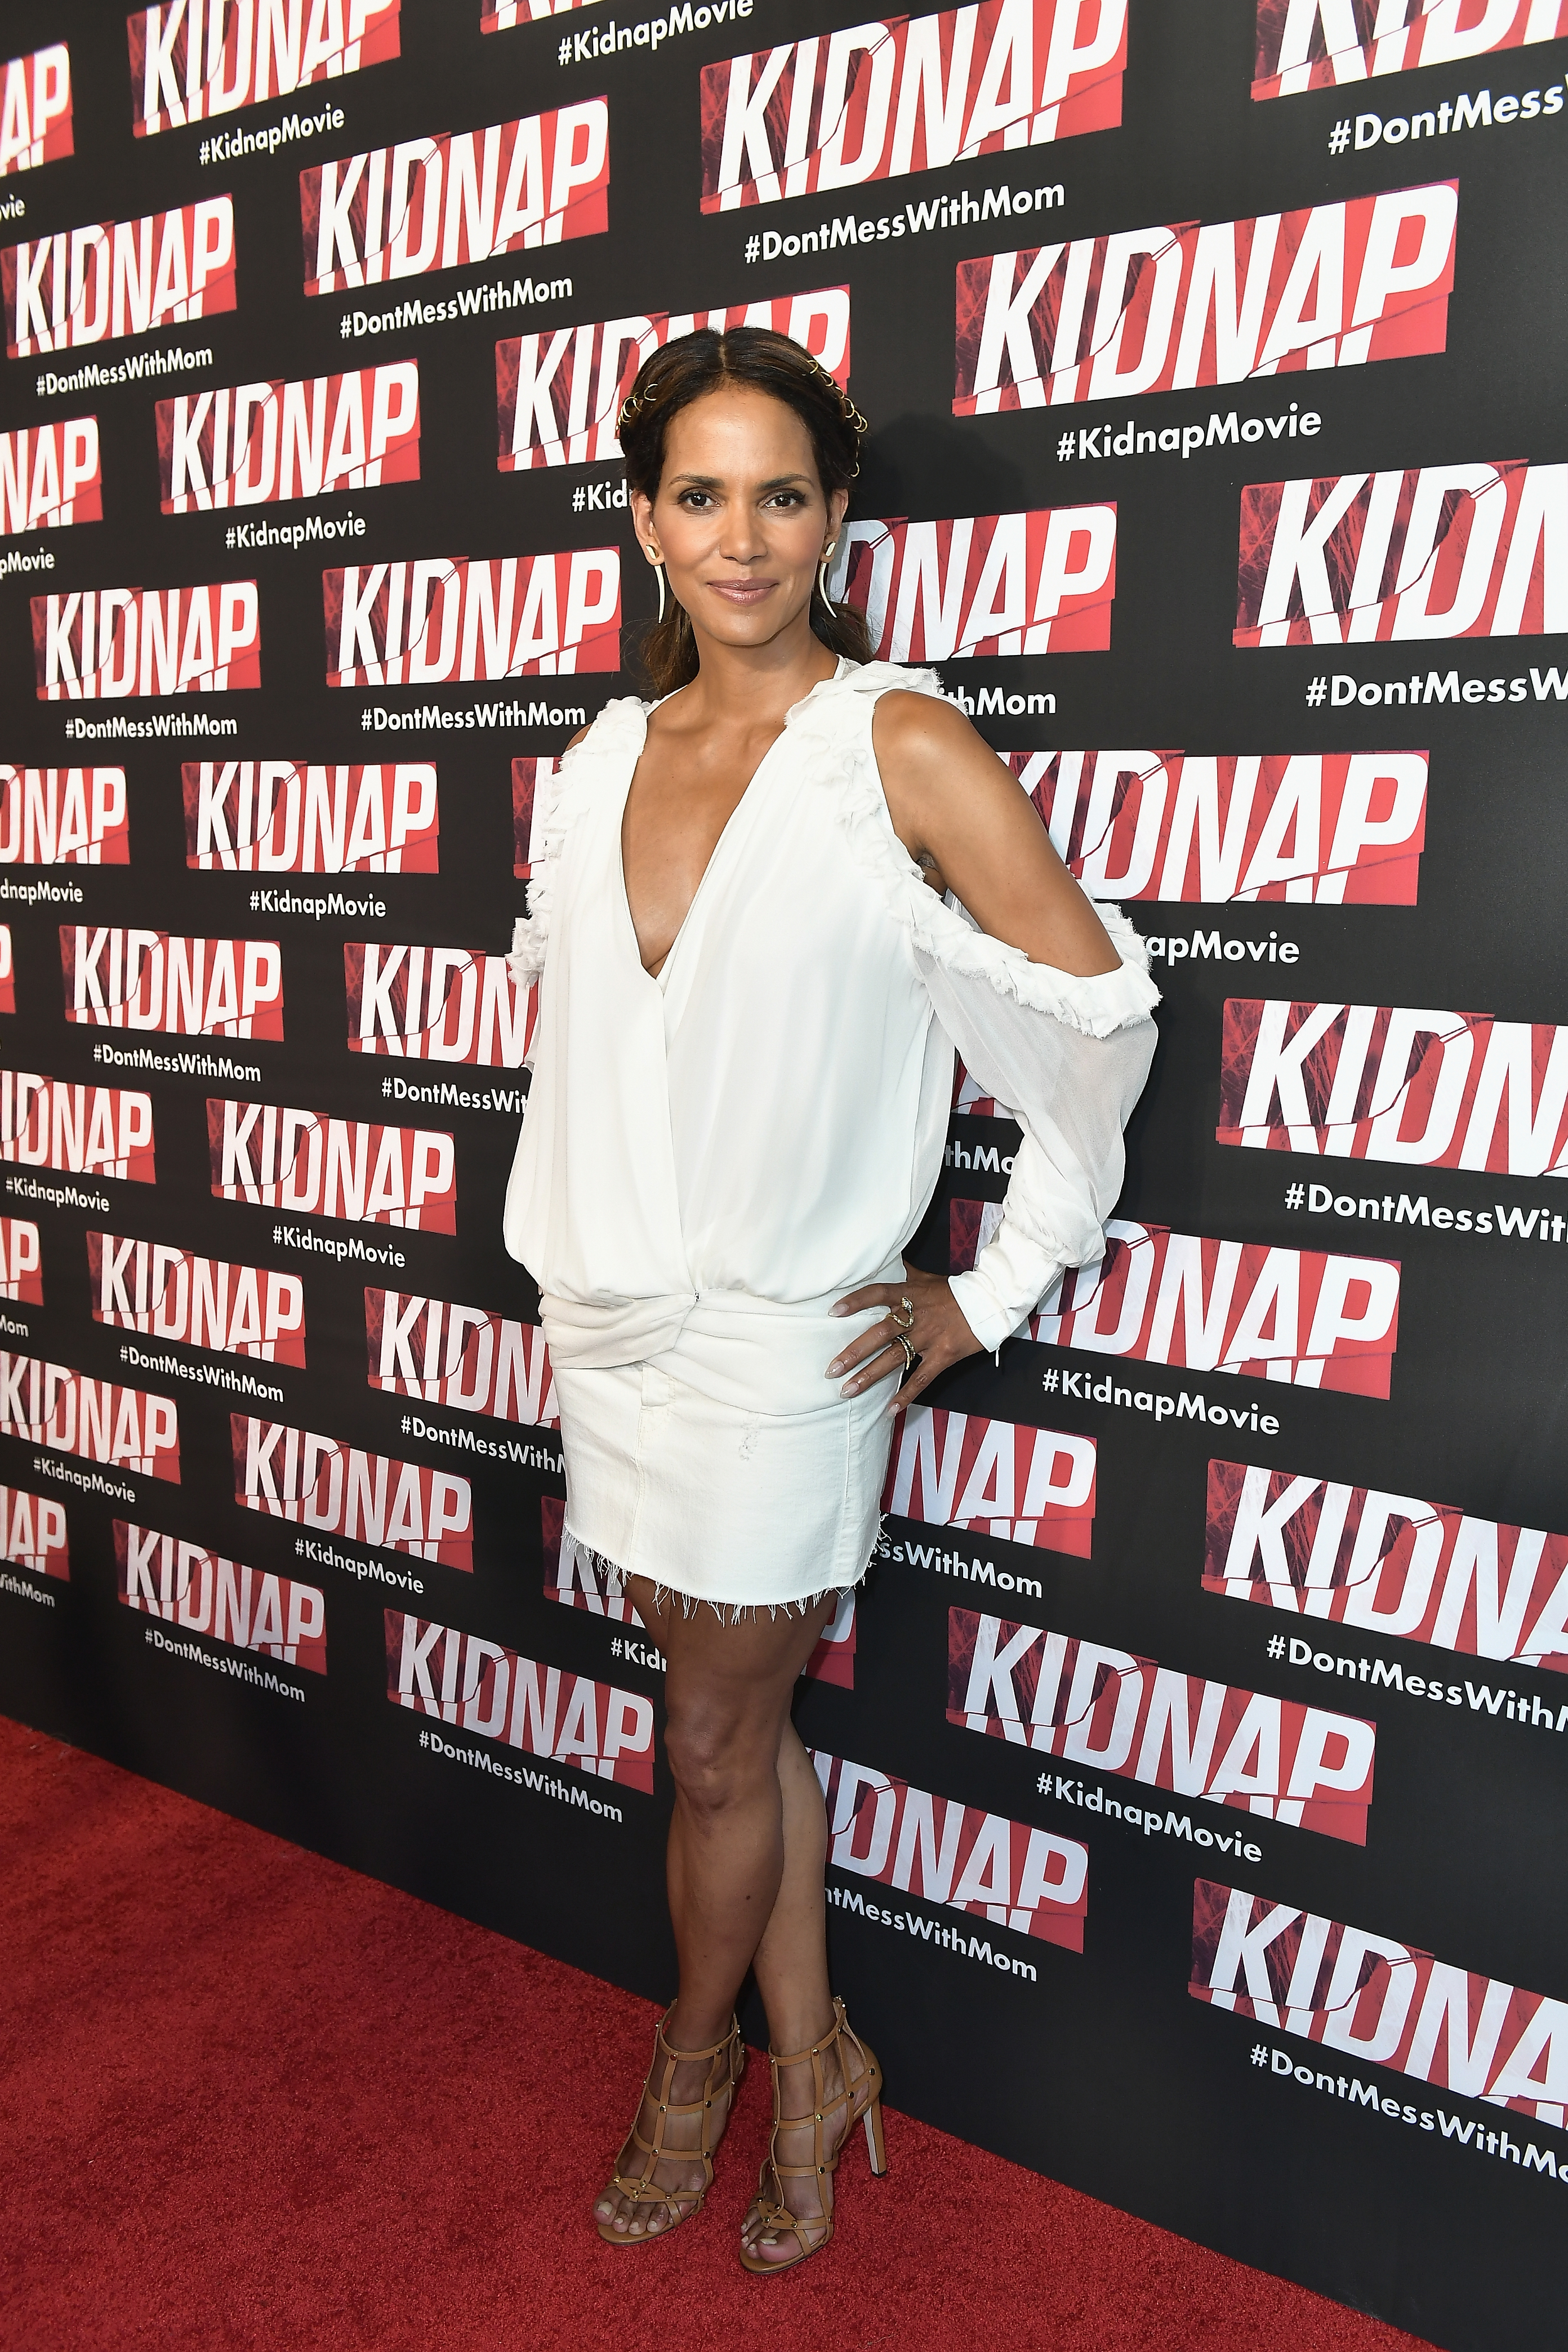 MIAMI, FL - JULY 24:  Halle Berry attends the red carpet movie KIDNAP on July 24, 2017 in Miami, Florida.  (Photo by Gustavo Caballero/Getty Images for Allied Integrated Marketing)